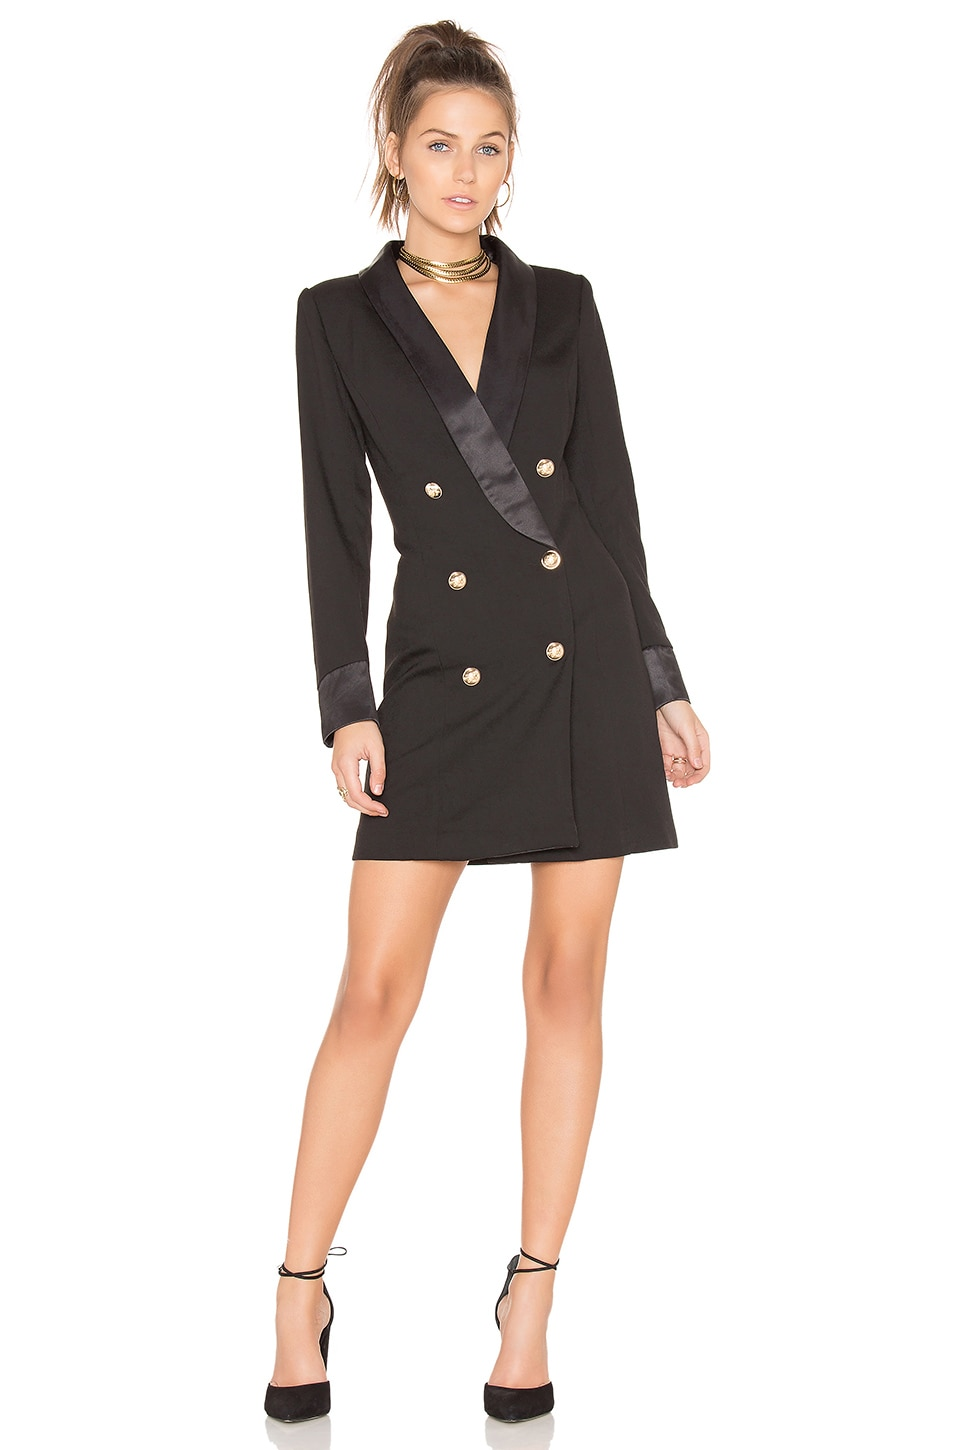 LIONESS Palermo Blazer Dress in Black